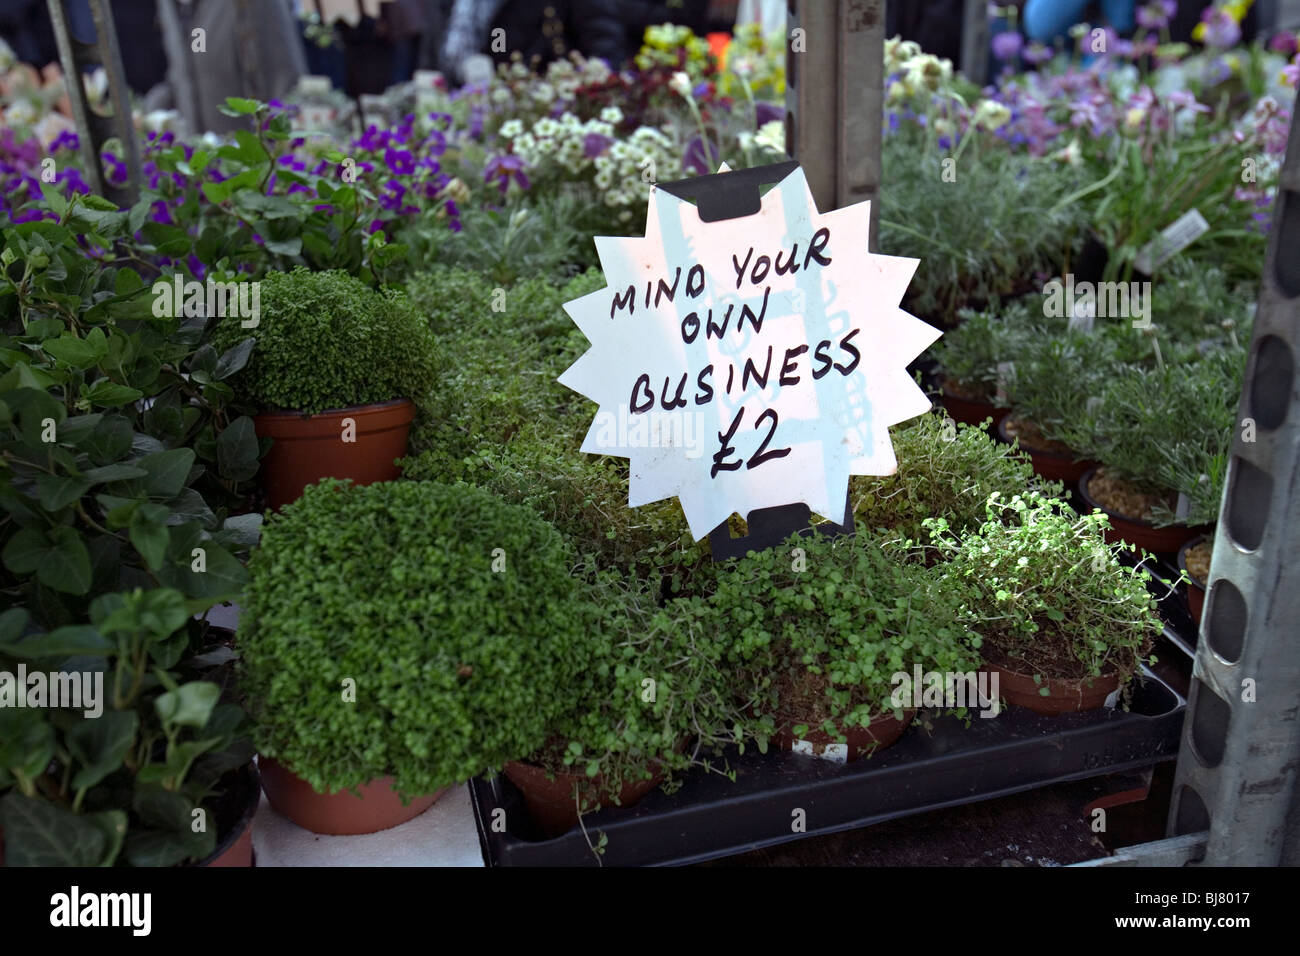 Buy mind your own business plant